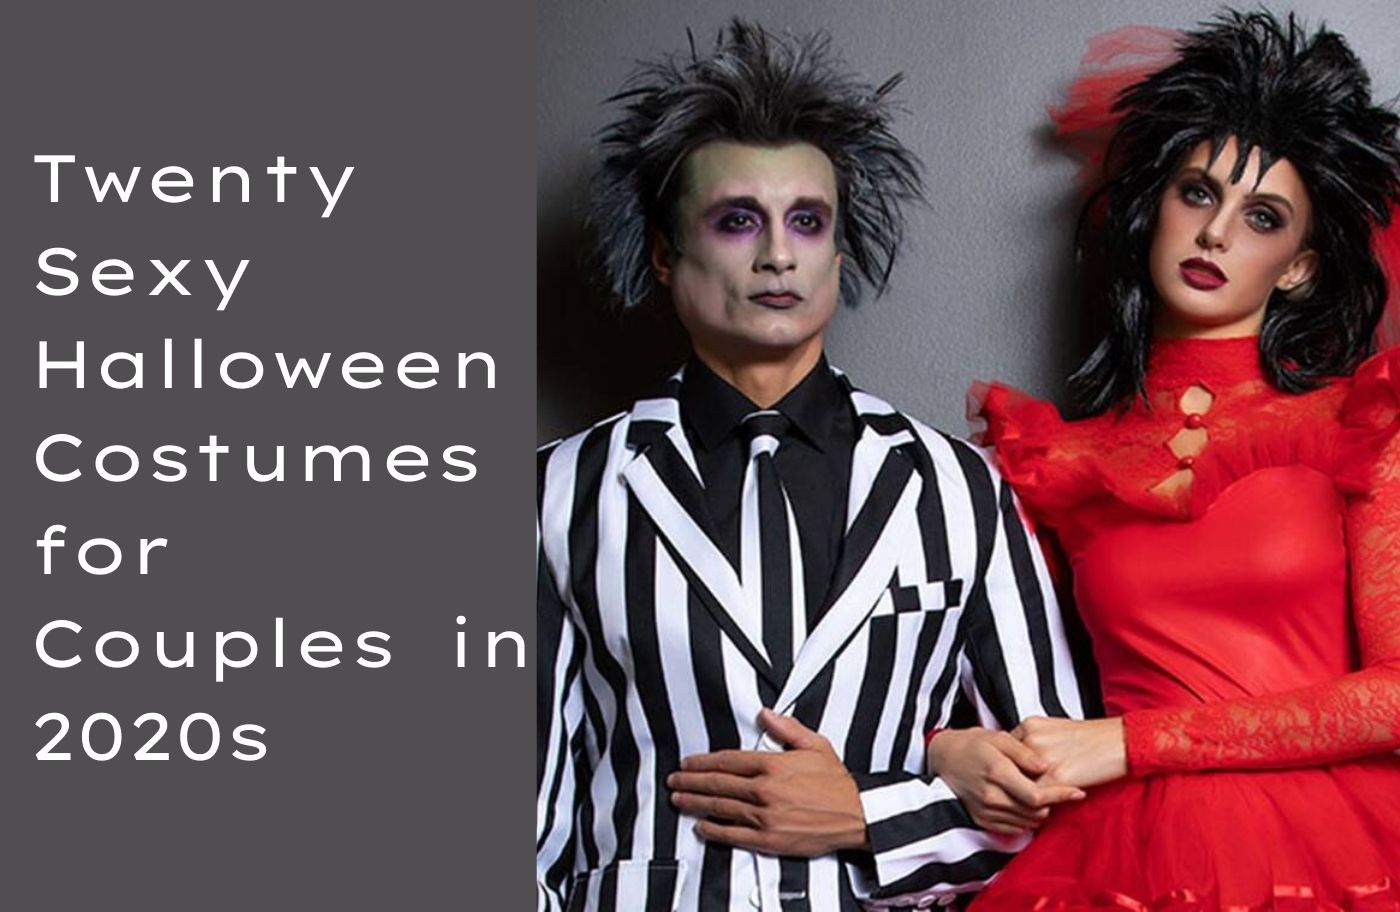 Halloween Costume Party 2021.20 Sexy Halloween Costumes For Couples In 2021 The Fashion Fantasy